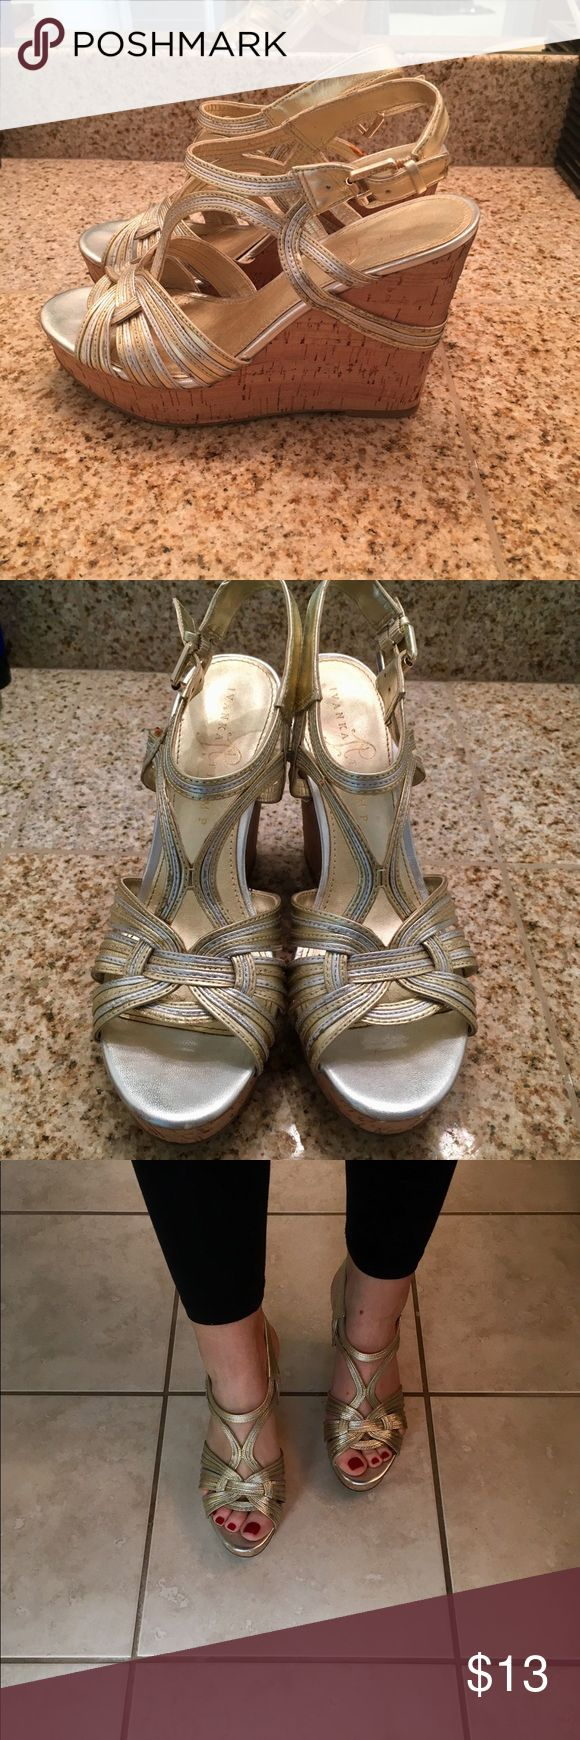 """Metallic gold & silver Ivanka Trump wedge sandals Metallic gold & silver wedge sandals by Ivanka Trump. Approx. 4"""" cork wedge with 1.5"""" platform. Very comfy and easy to walk in. Ivanka Trump Shoes Wedges"""